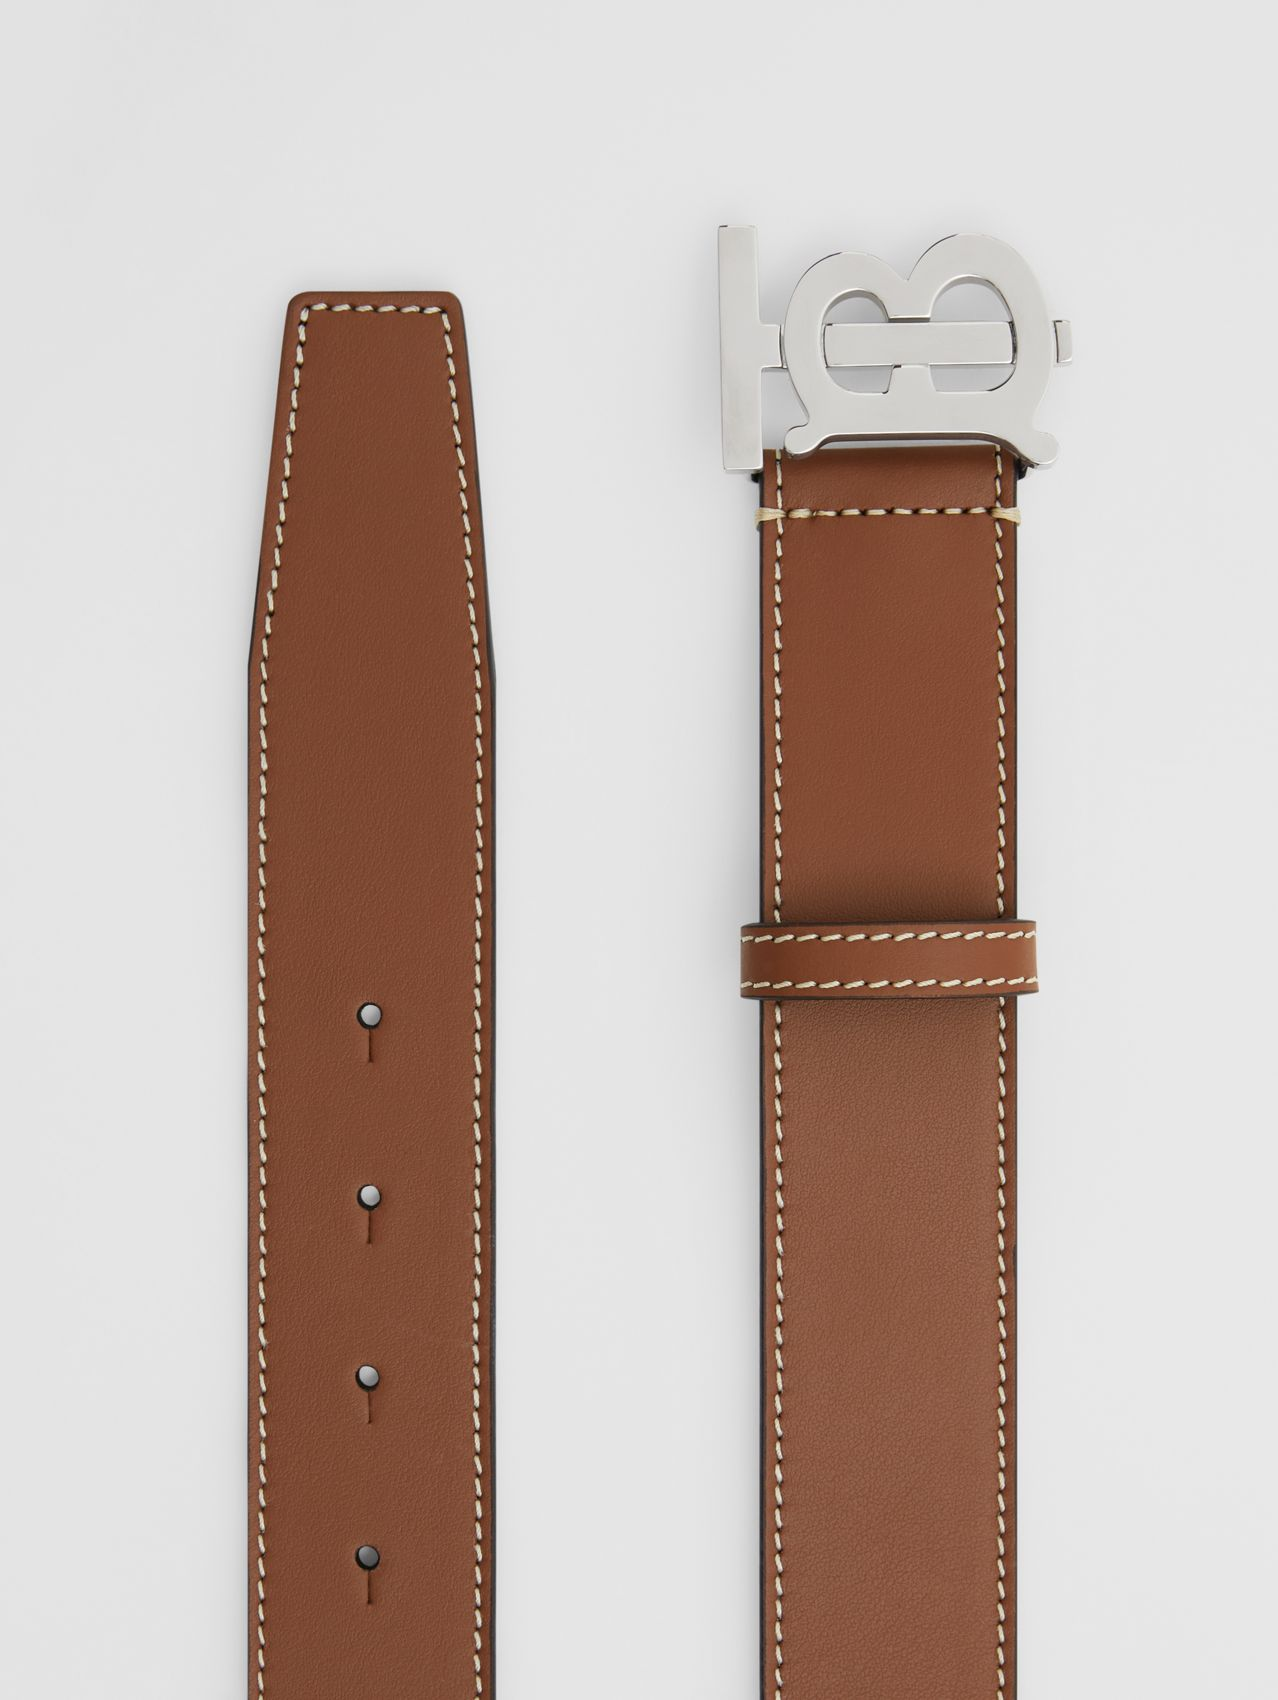 Monogram Motif Topstitched Leather Belt in Tan